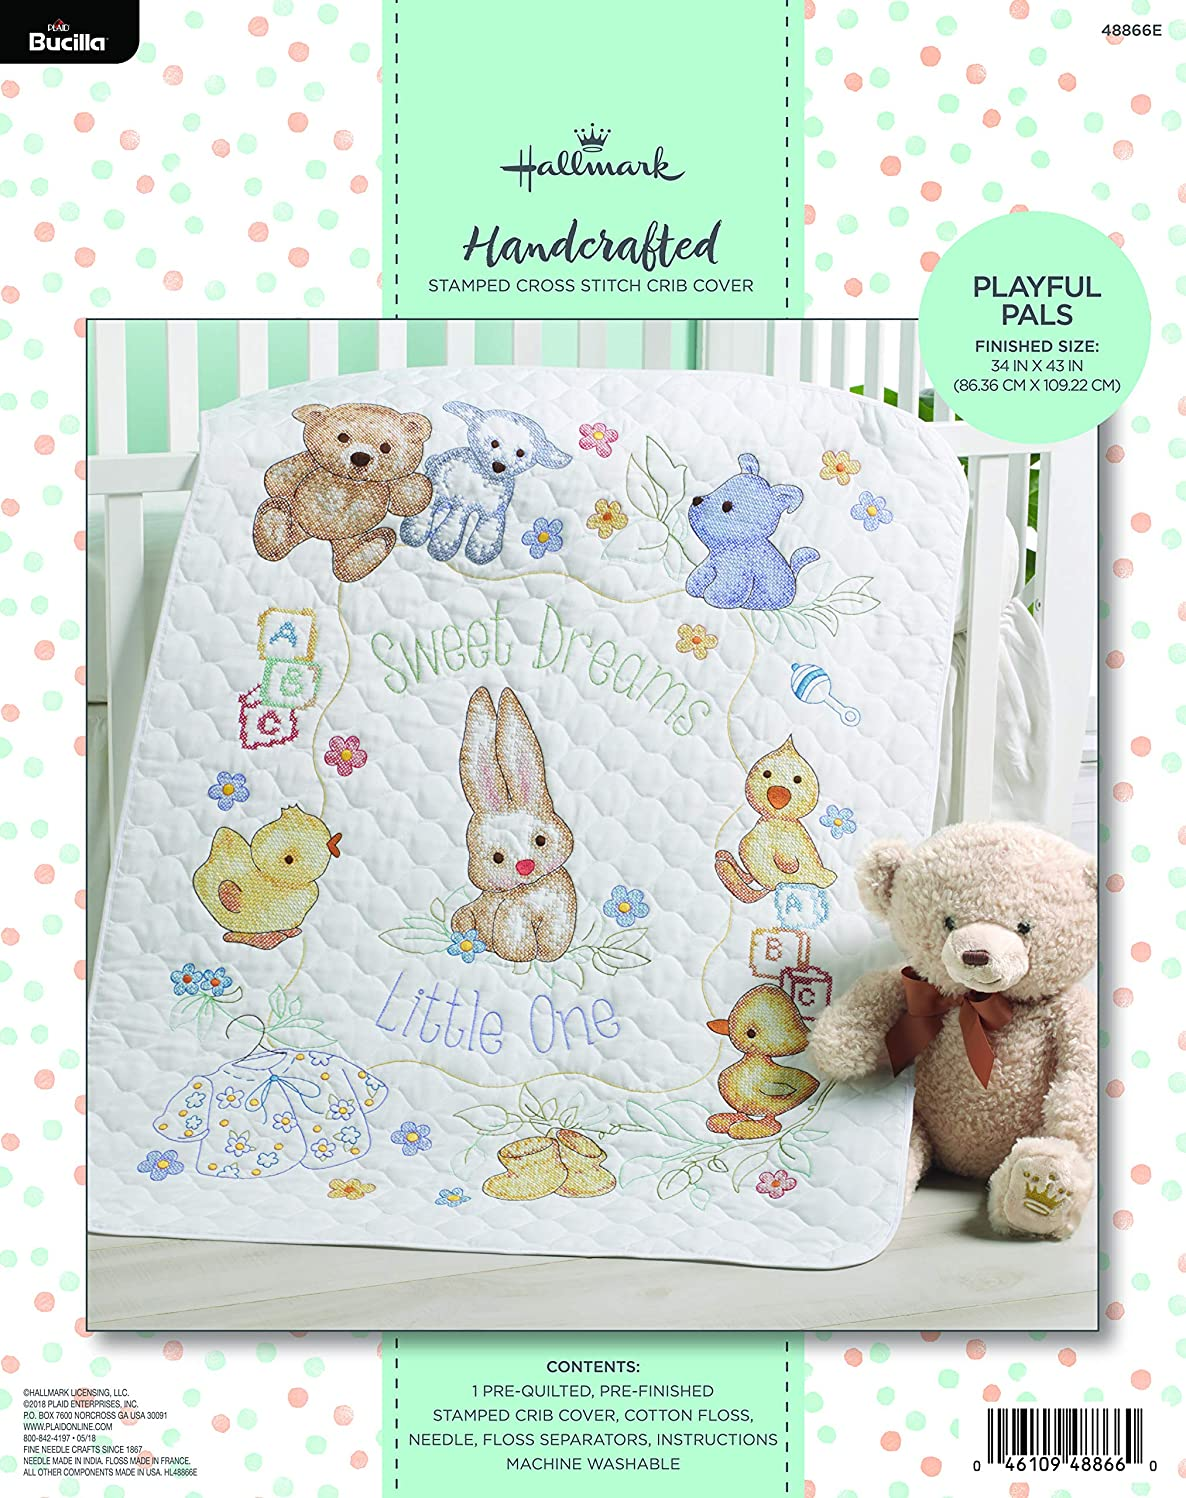 Bucilla Hallmark 48866E Stamped Cross Stitch Baby Crib Cover, Playful Pals